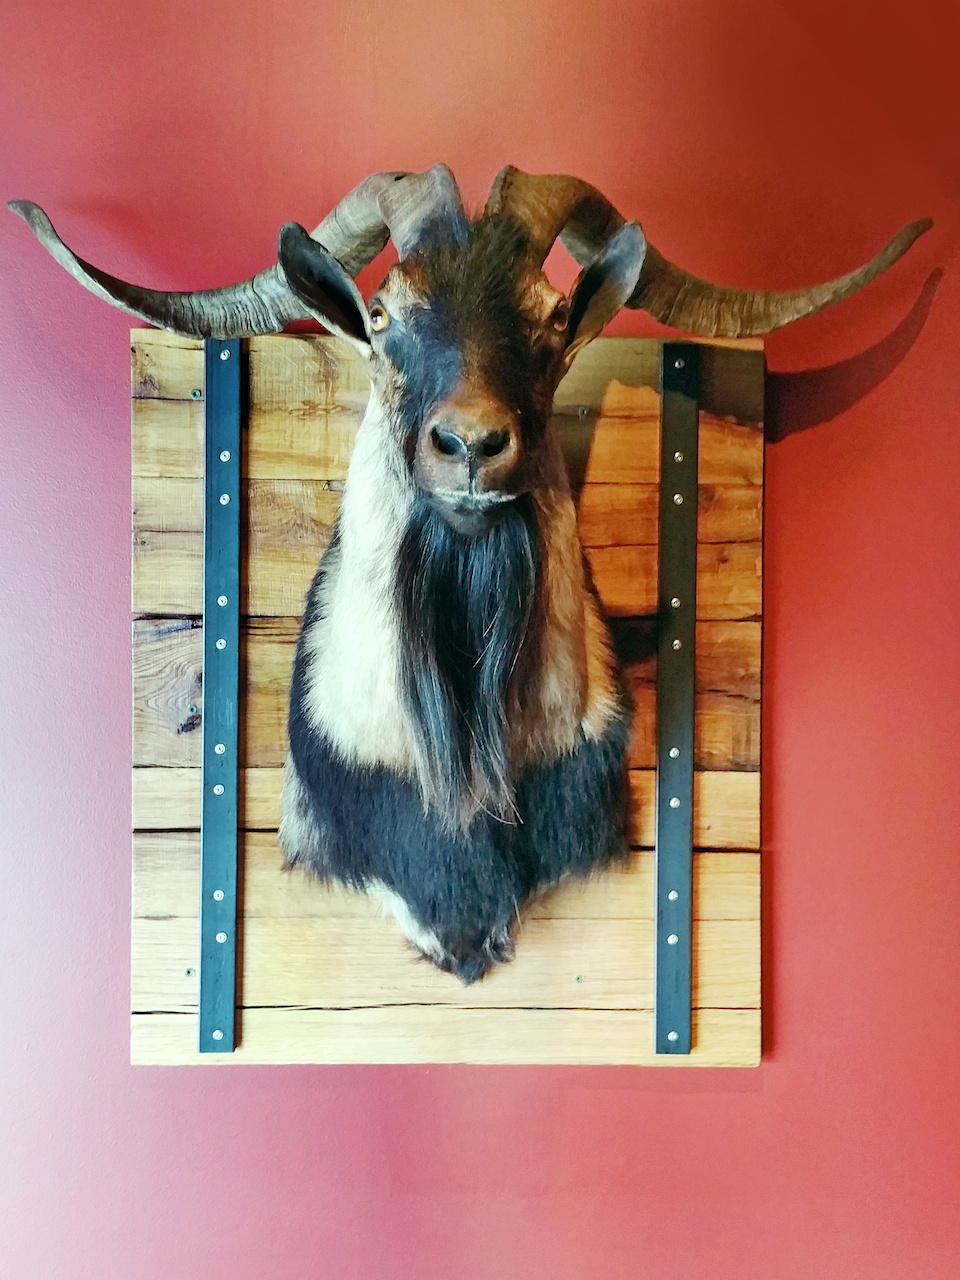 A mounted goat watches over the diners at wooden goat.